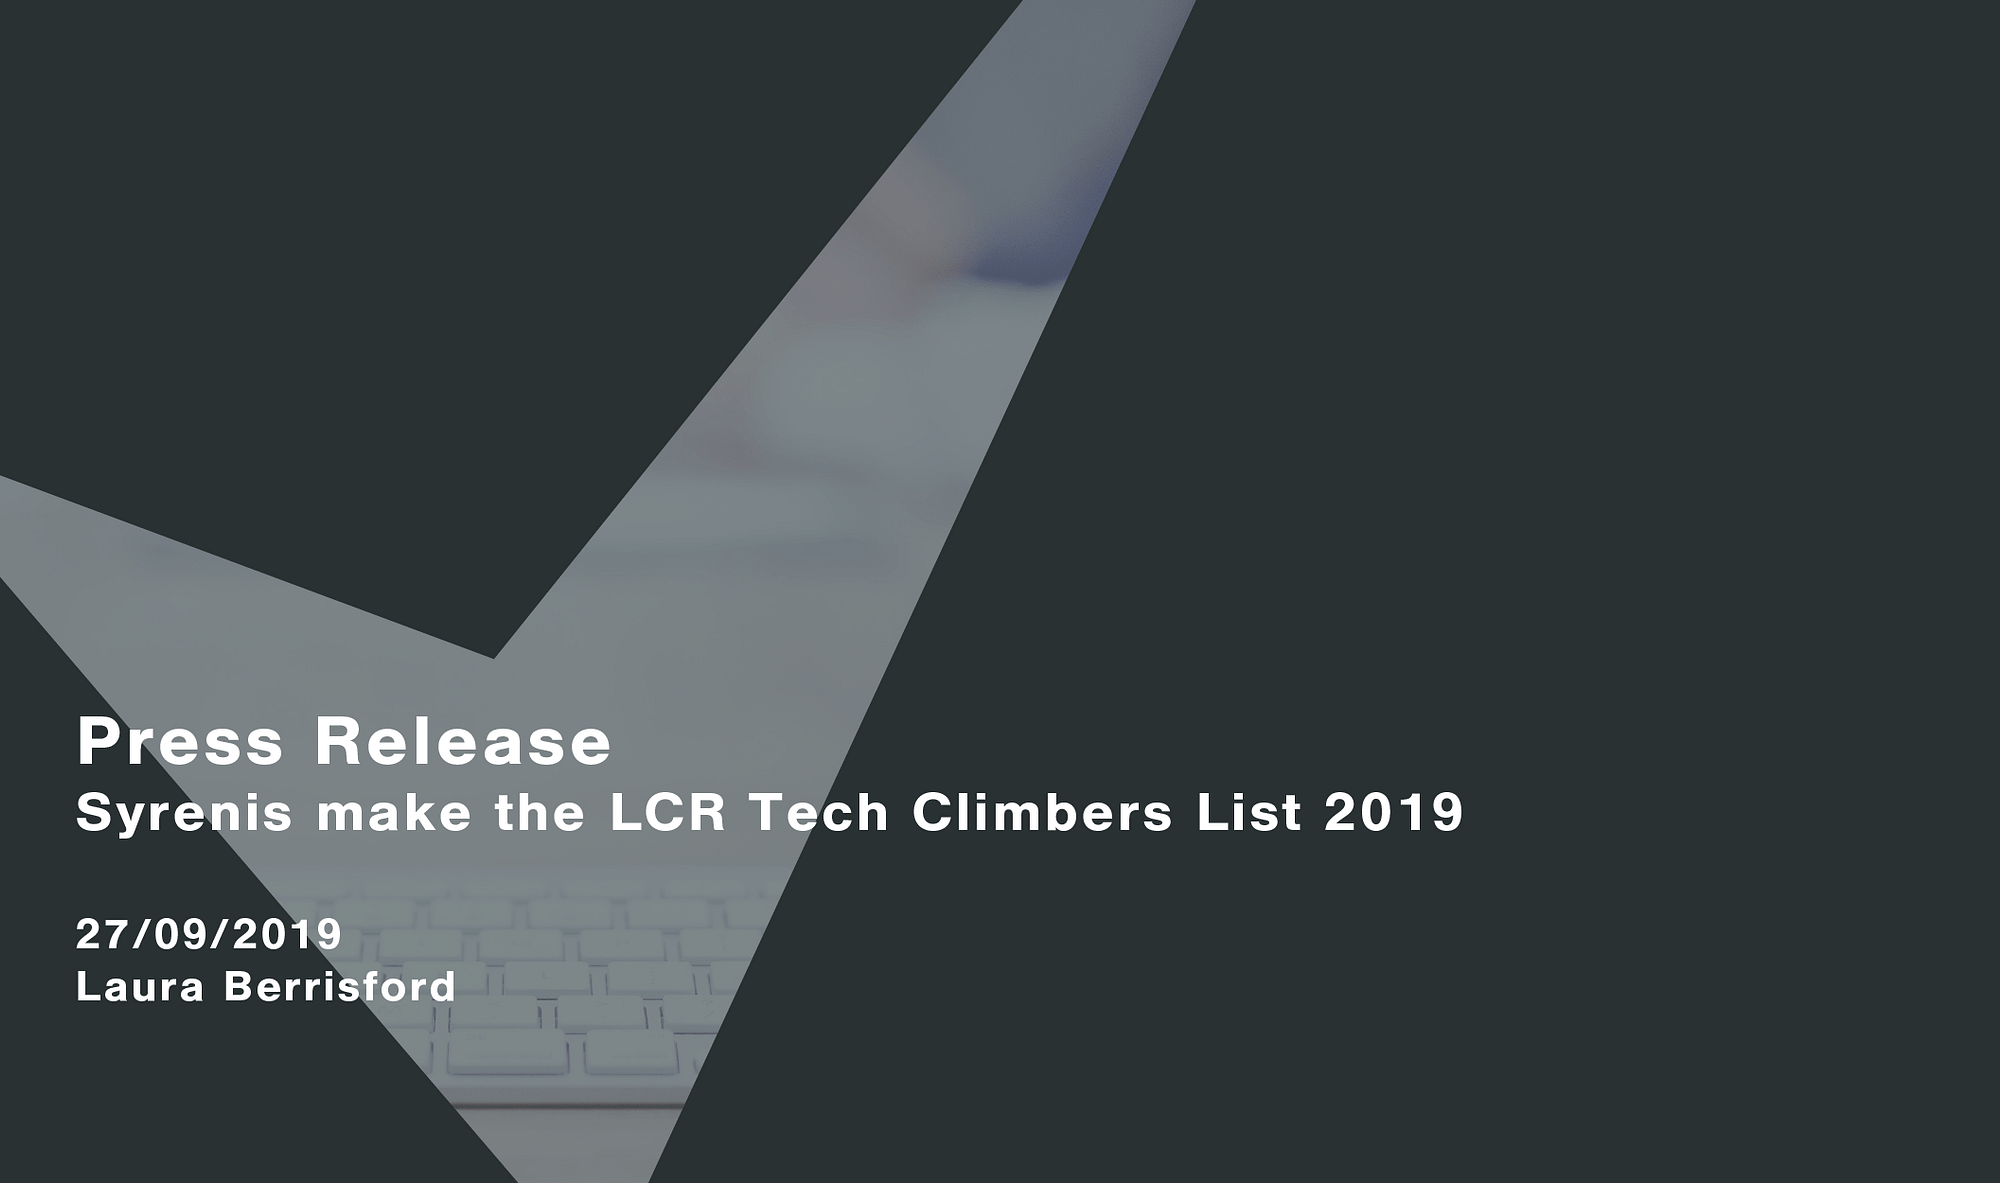 Syrenis-make-the-LCR-Tech-Climbers-List-2019